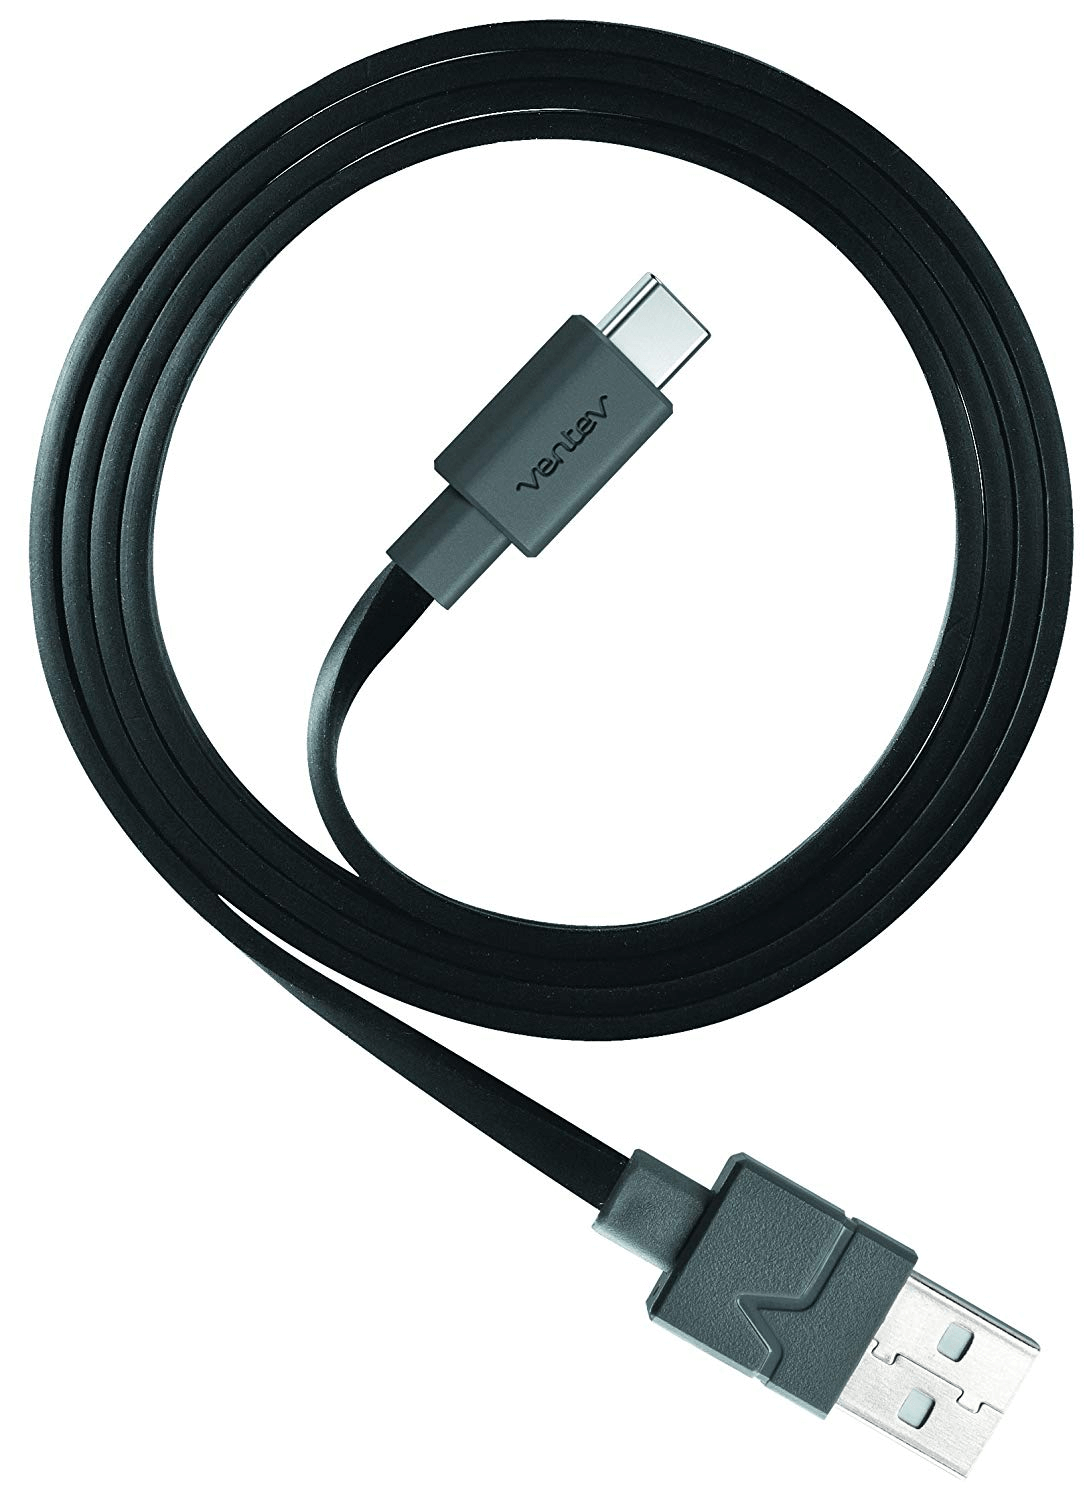 Ventev chargesync alloy USB Type A-C 2.0 cable